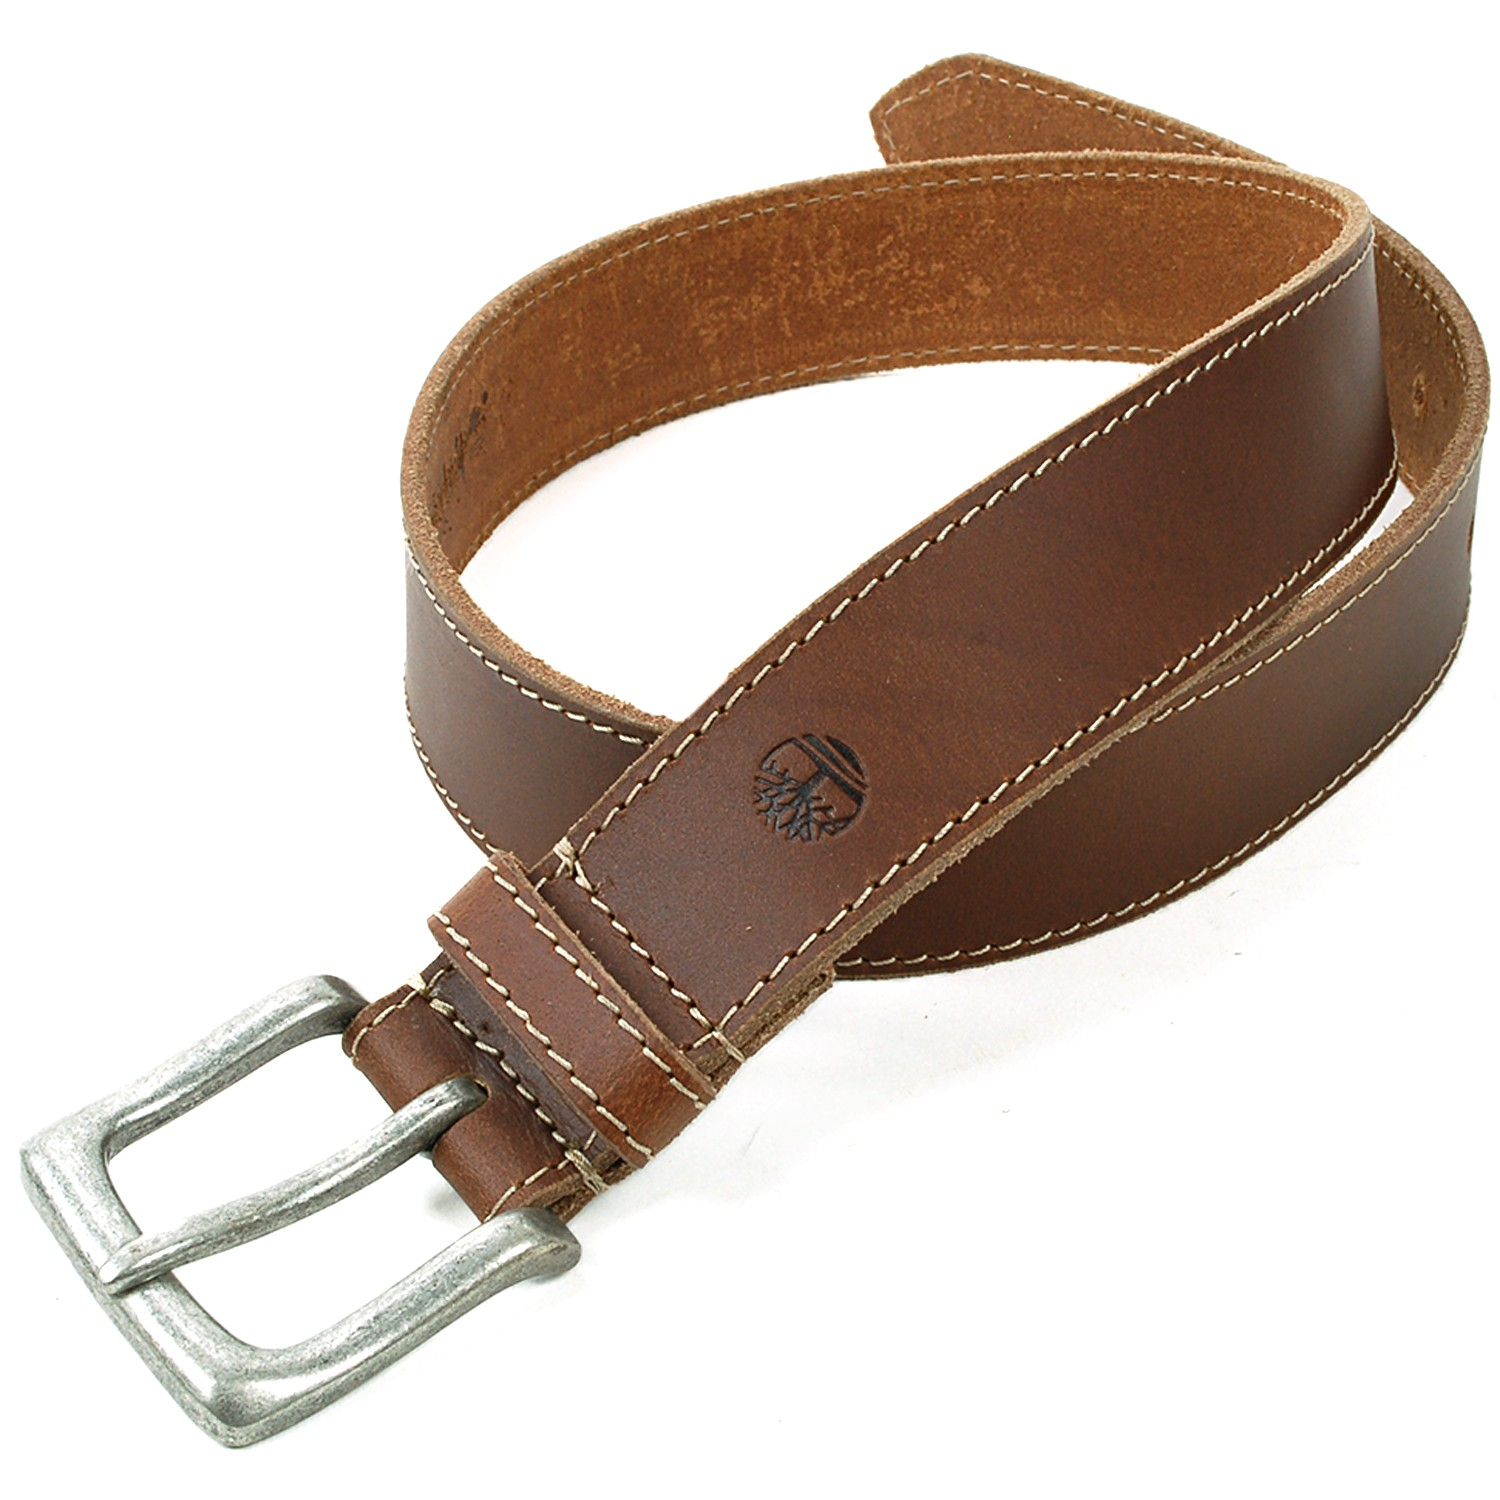 Leather Belts. Showing 9 of 9 results that match your query. Search Product Result. Product - Xhtang Men's Solid Buckle with Automatic Ratchet Leather Belt 35mm Wide 1 3/8